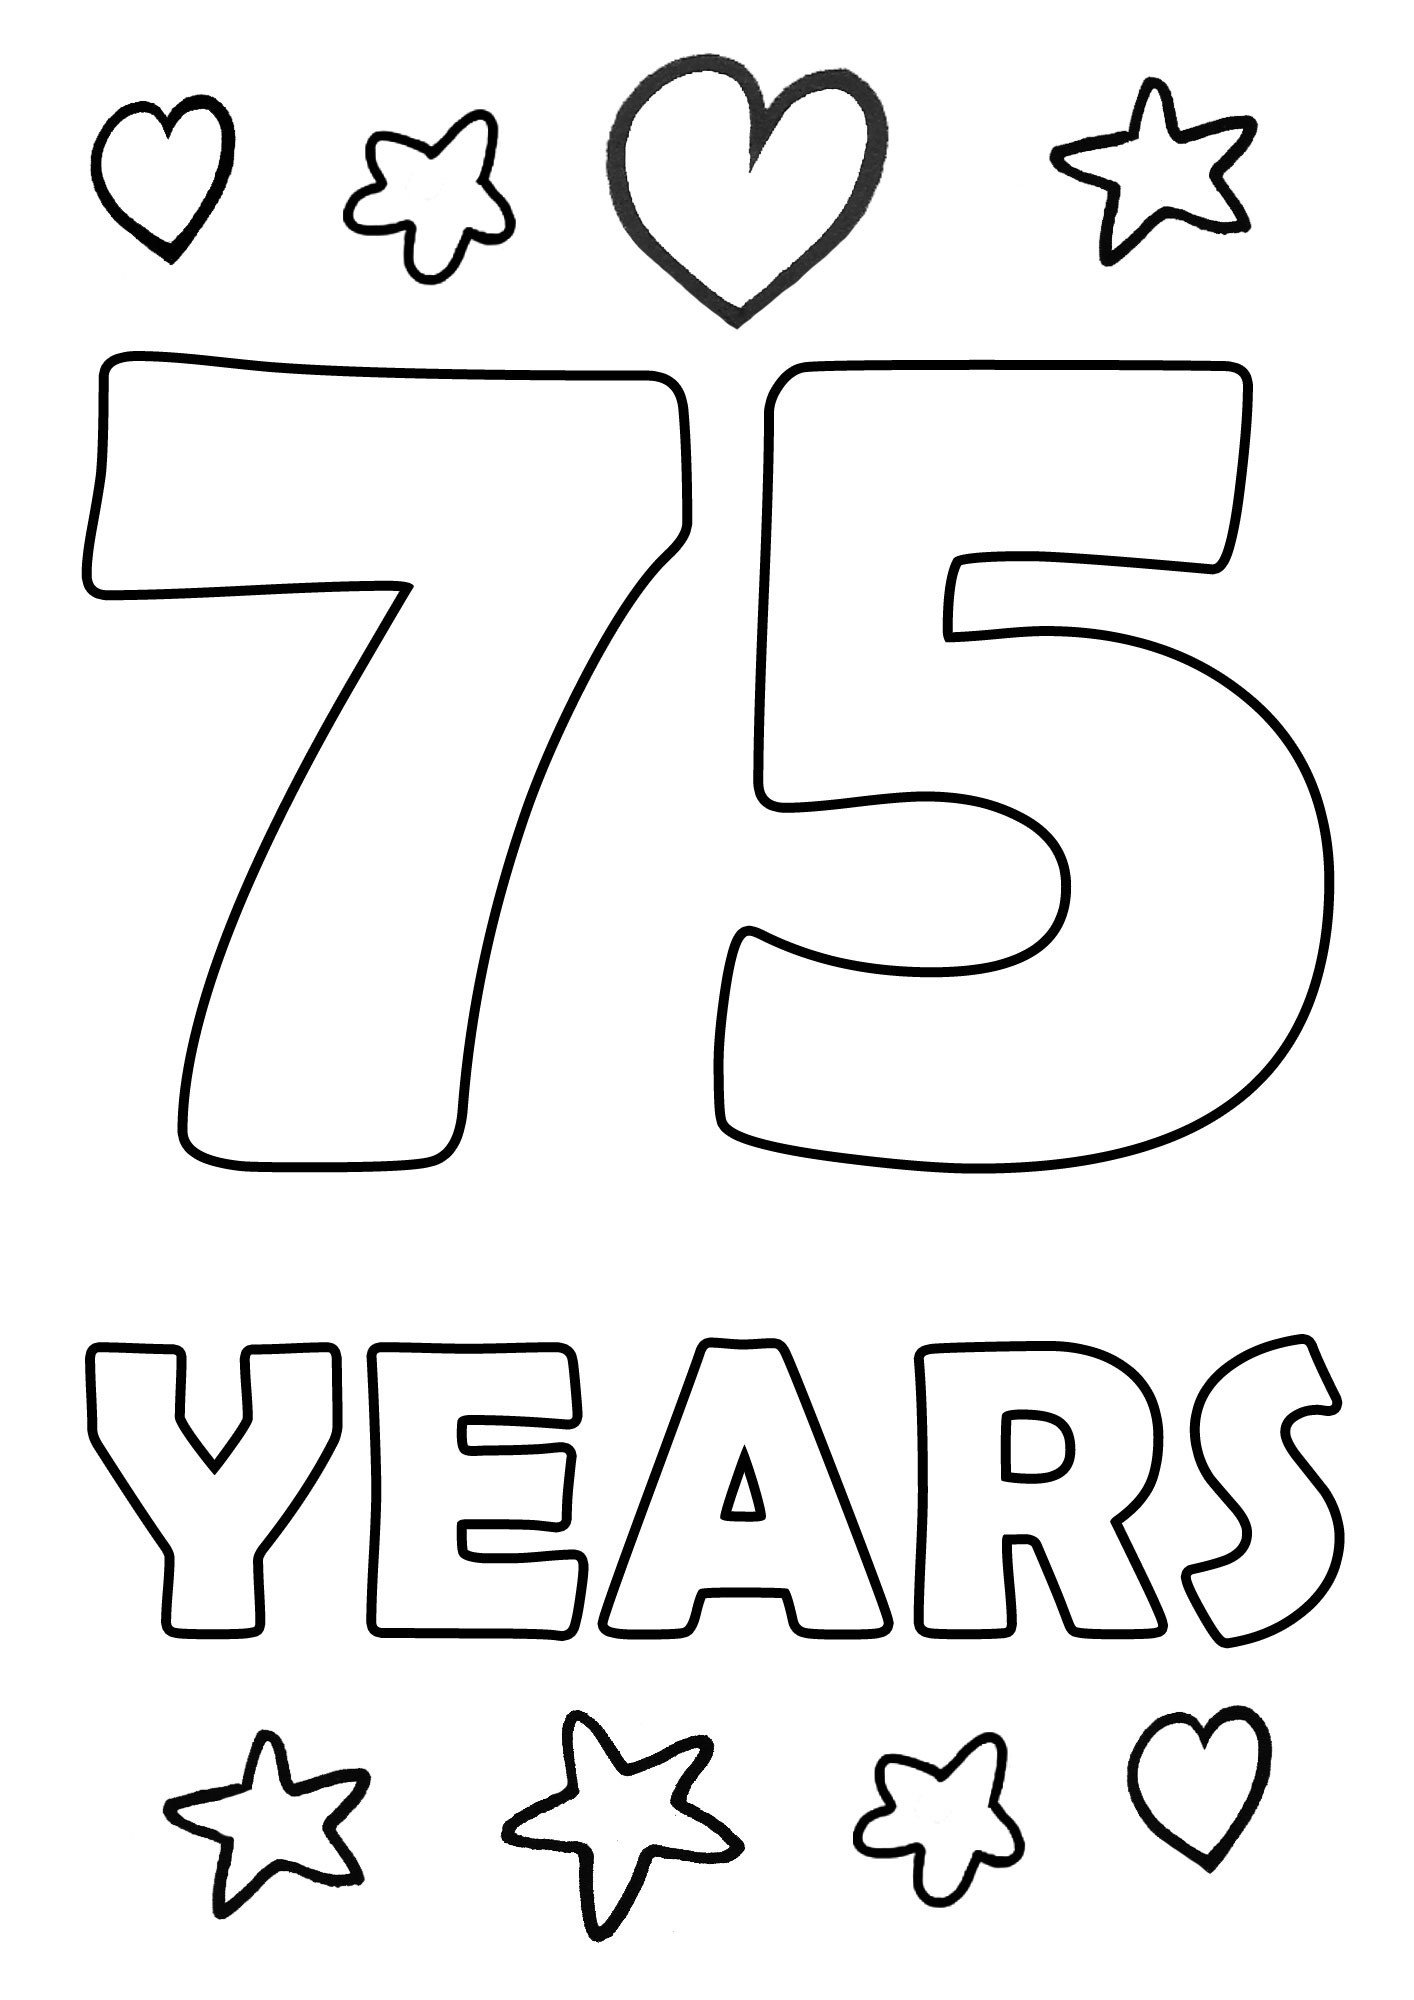 Printable colouring page for anniversaries of 75 years